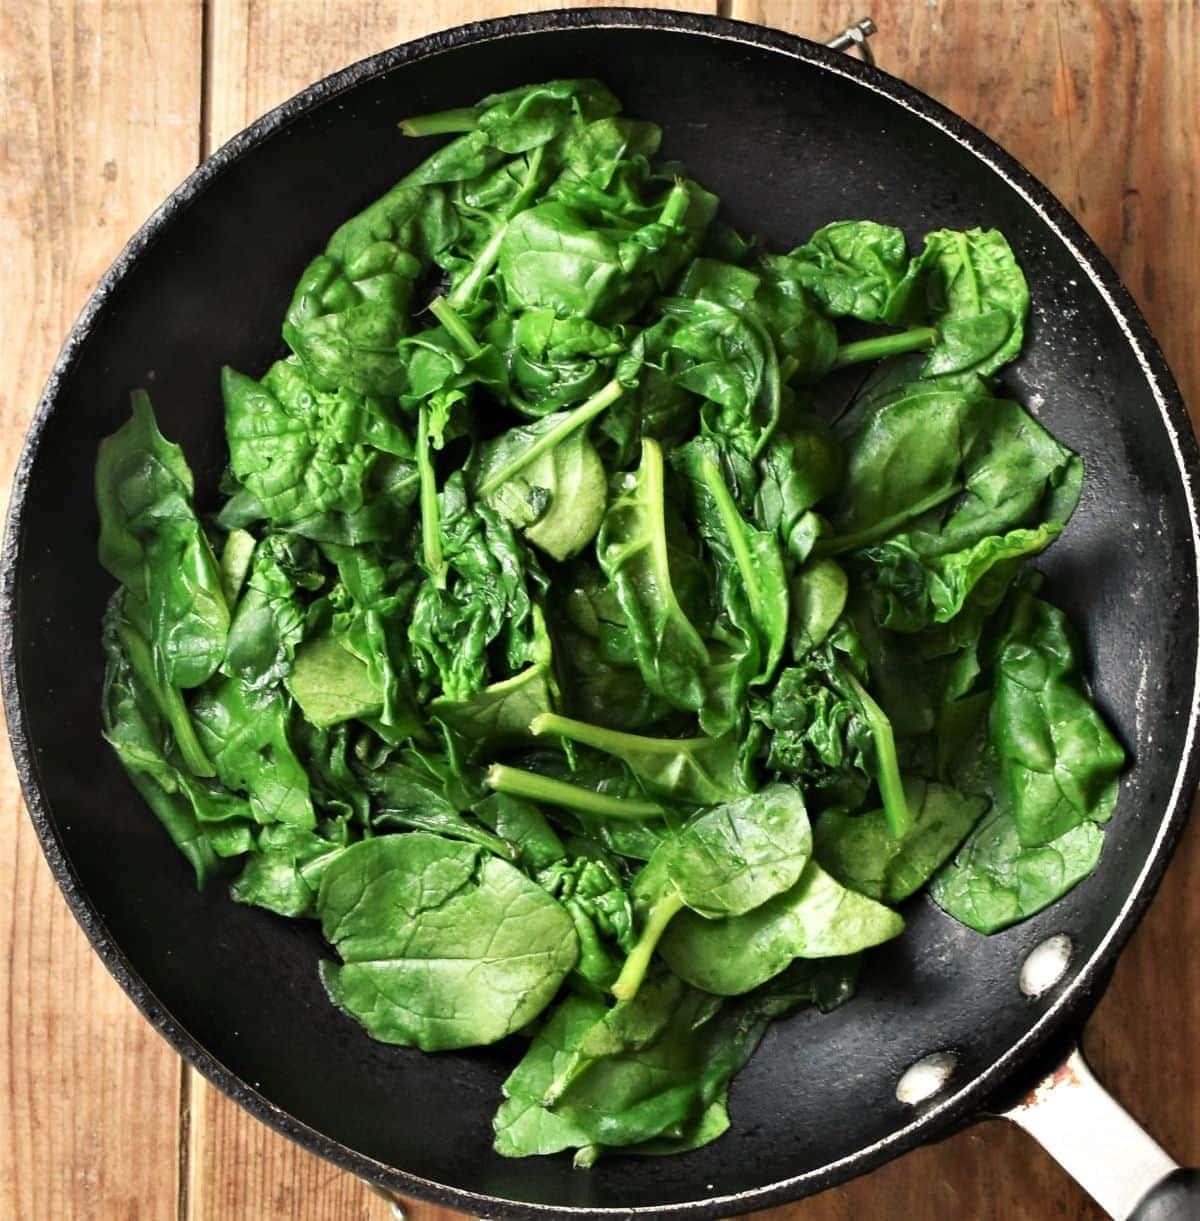 Fresh spinach, partly wilted, in skillet